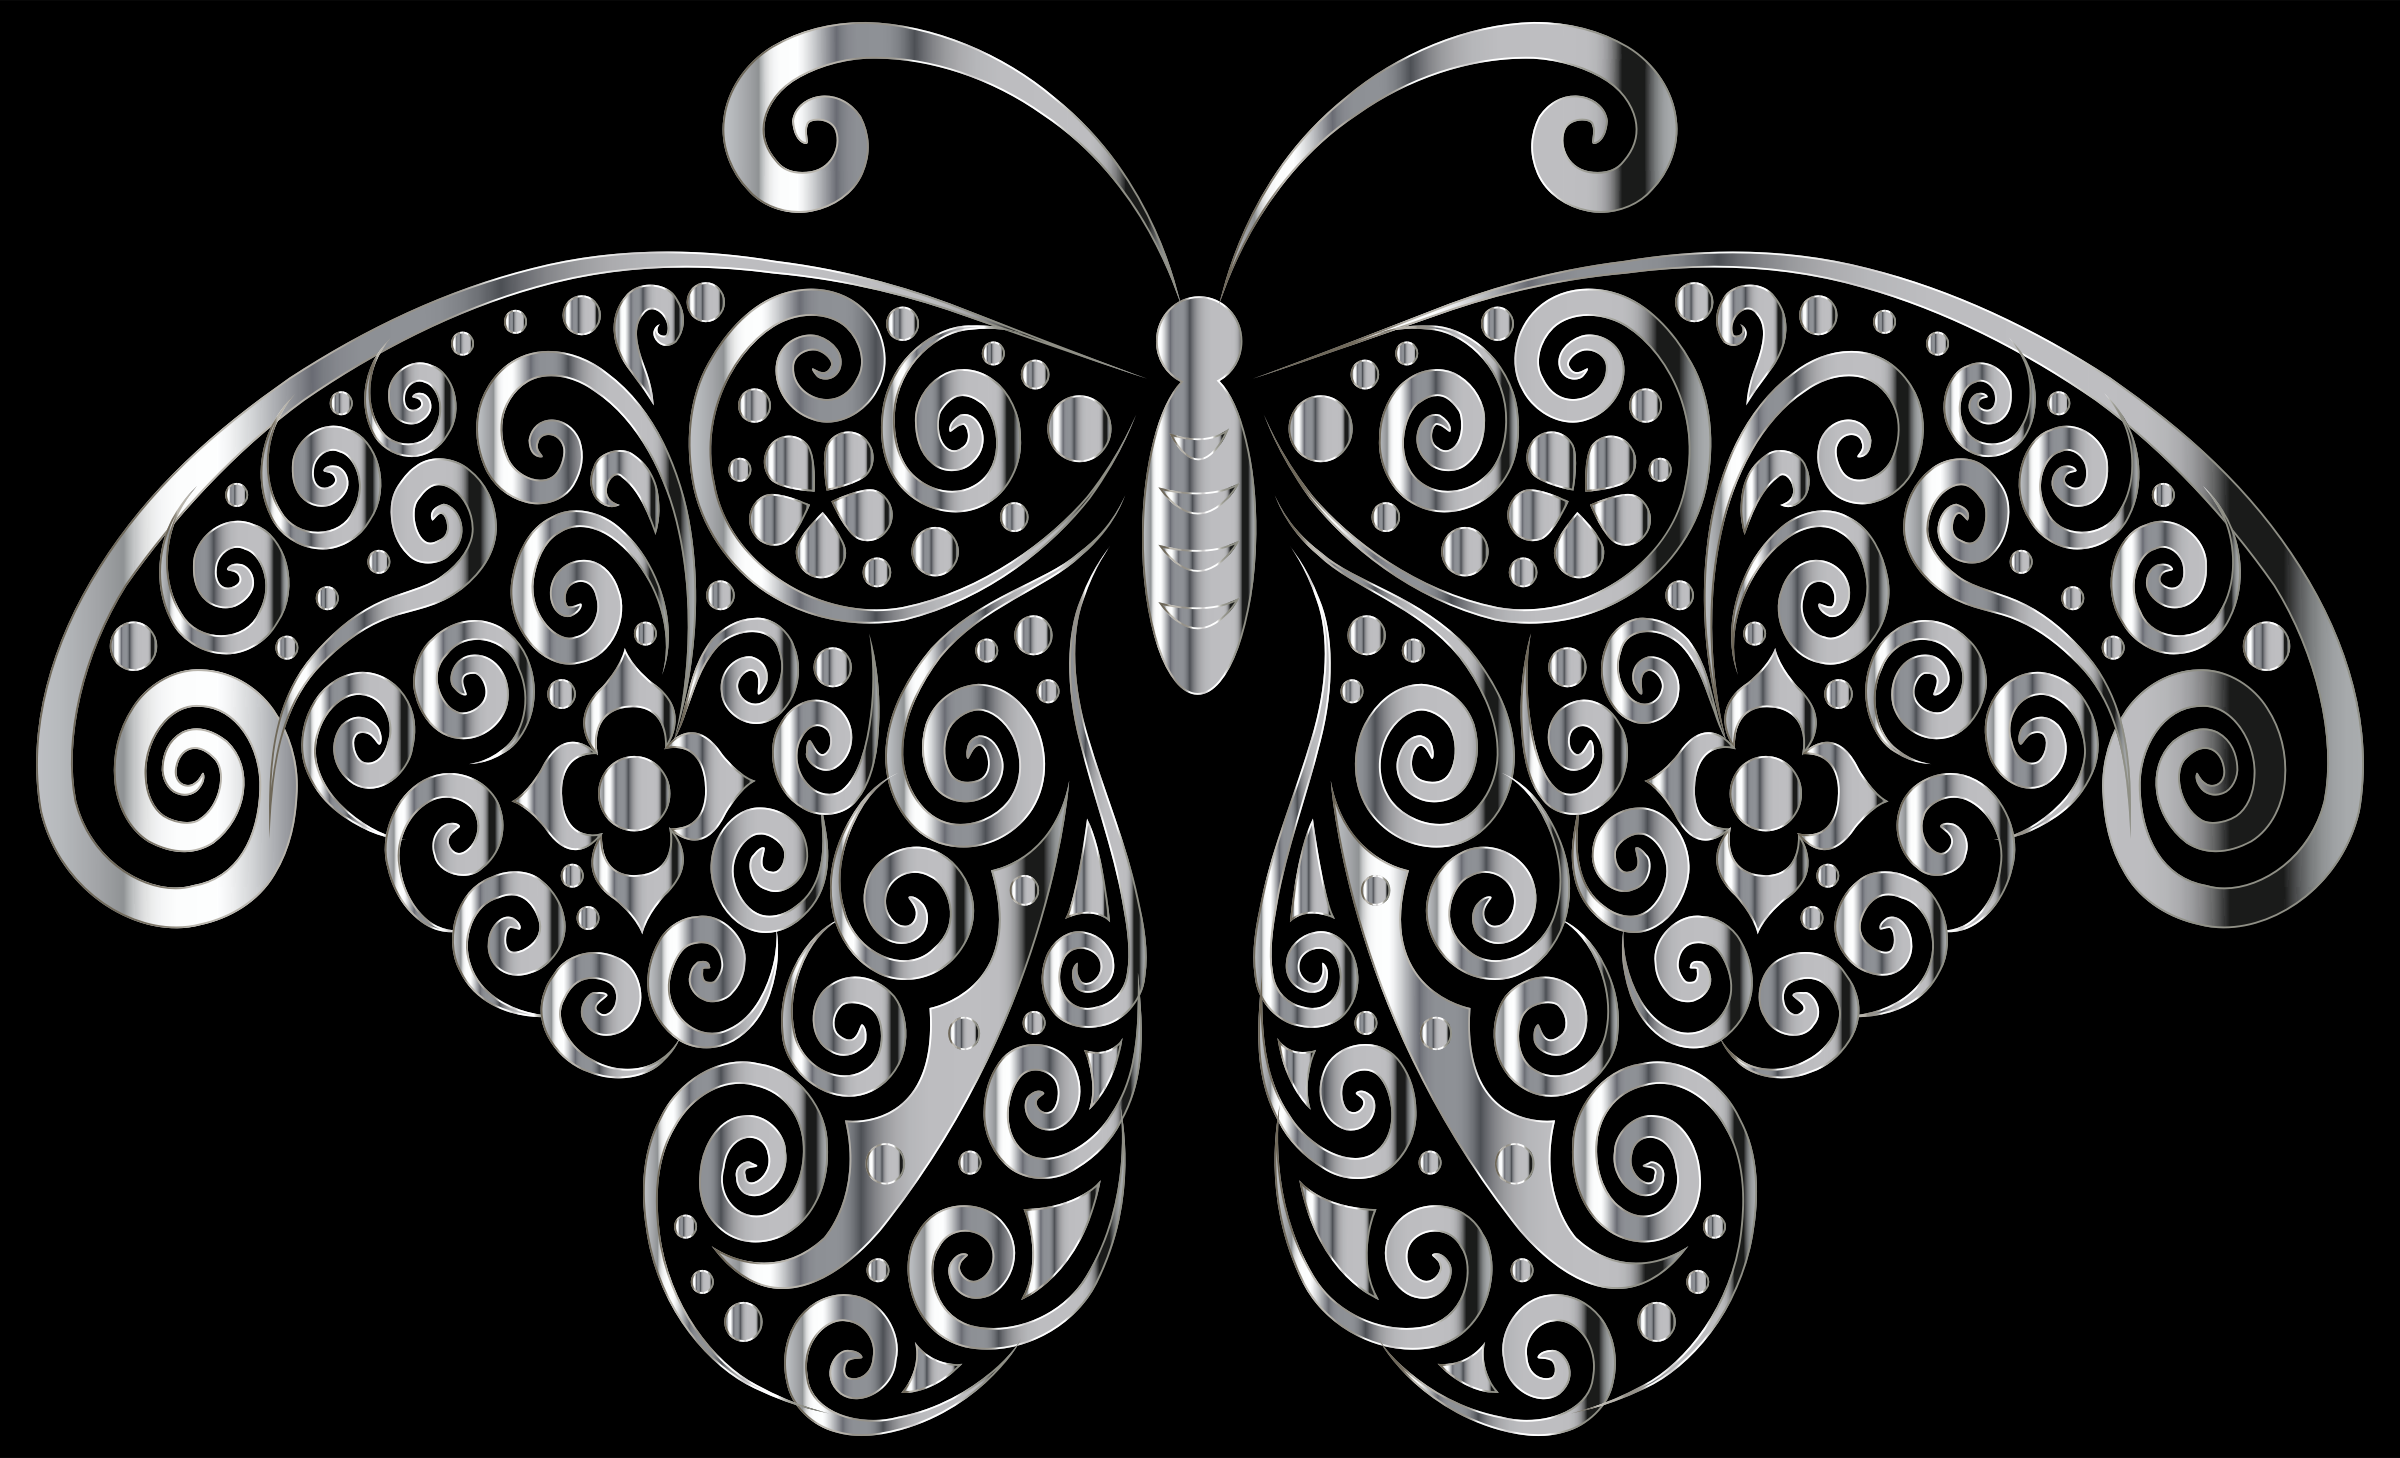 Chrome Floral Flourish Butterfly Silhouette by GDJ